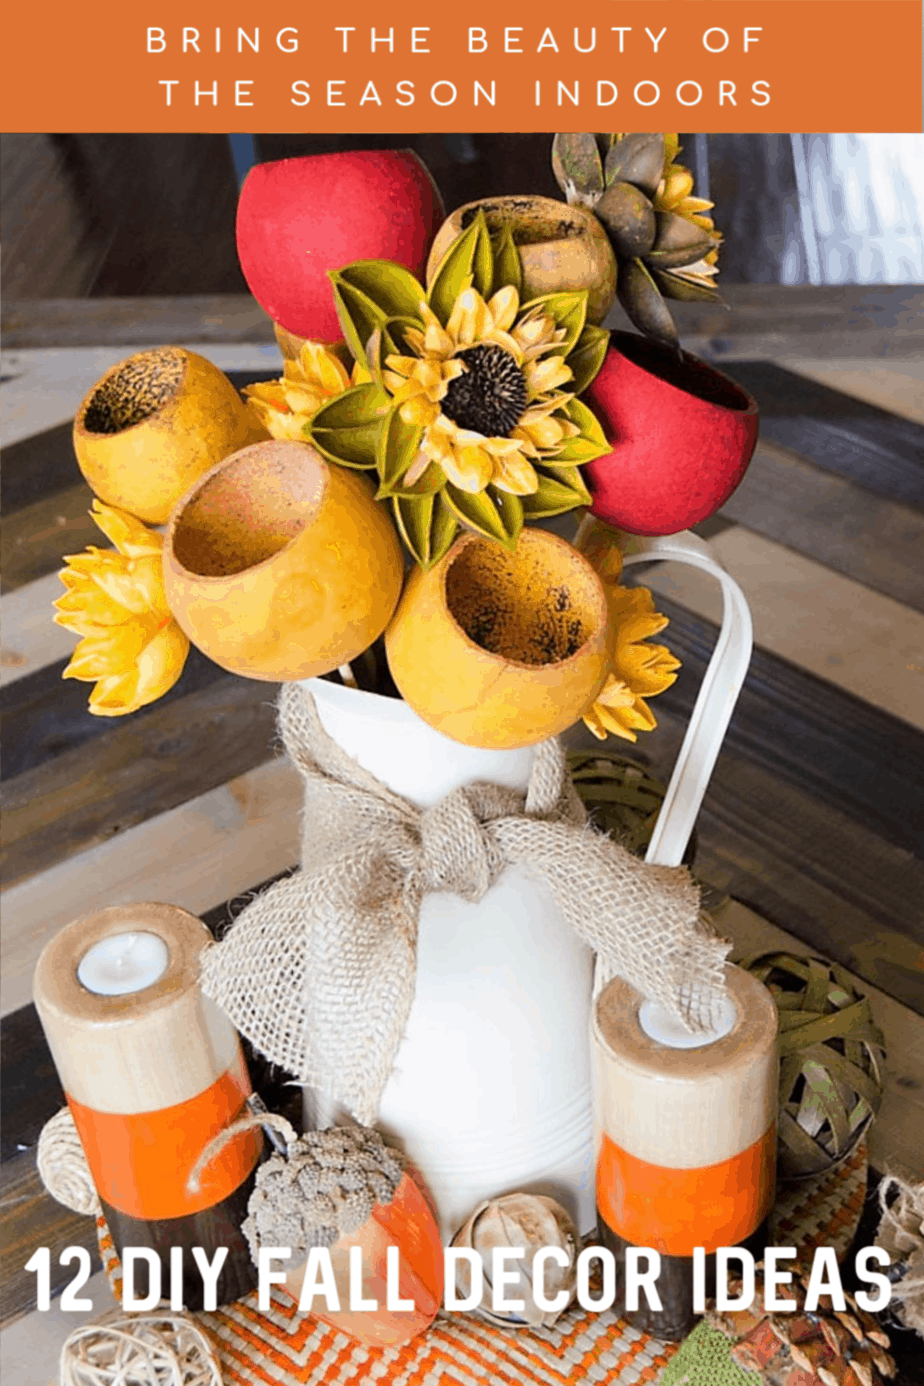 12 DIY Fall Decor Ideas To Bring The Beauty of the Season Indoors